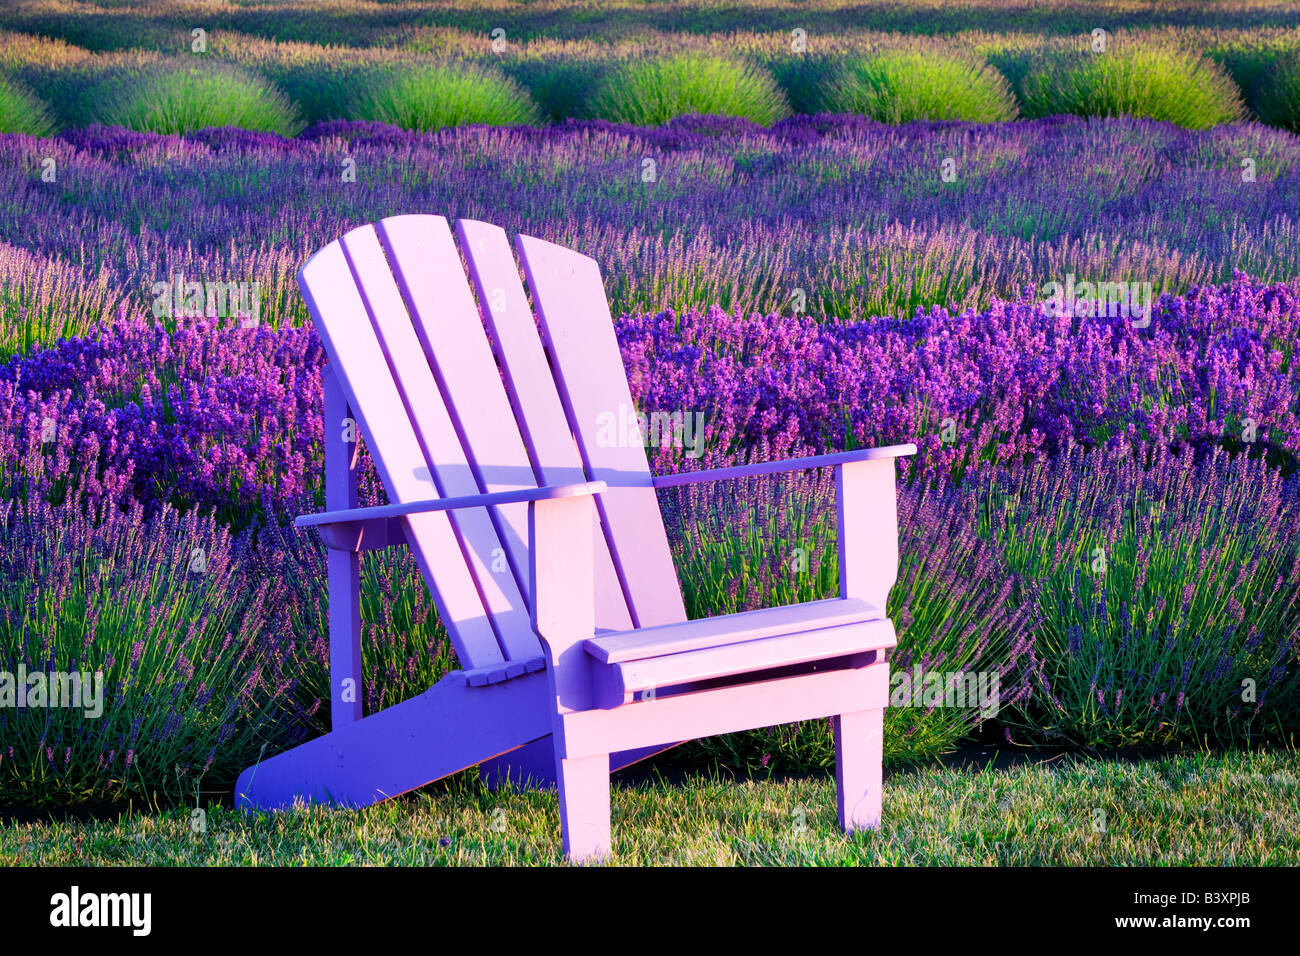 Chaire en champ de lavande Anges Lavender Farm Washington Photo Stock